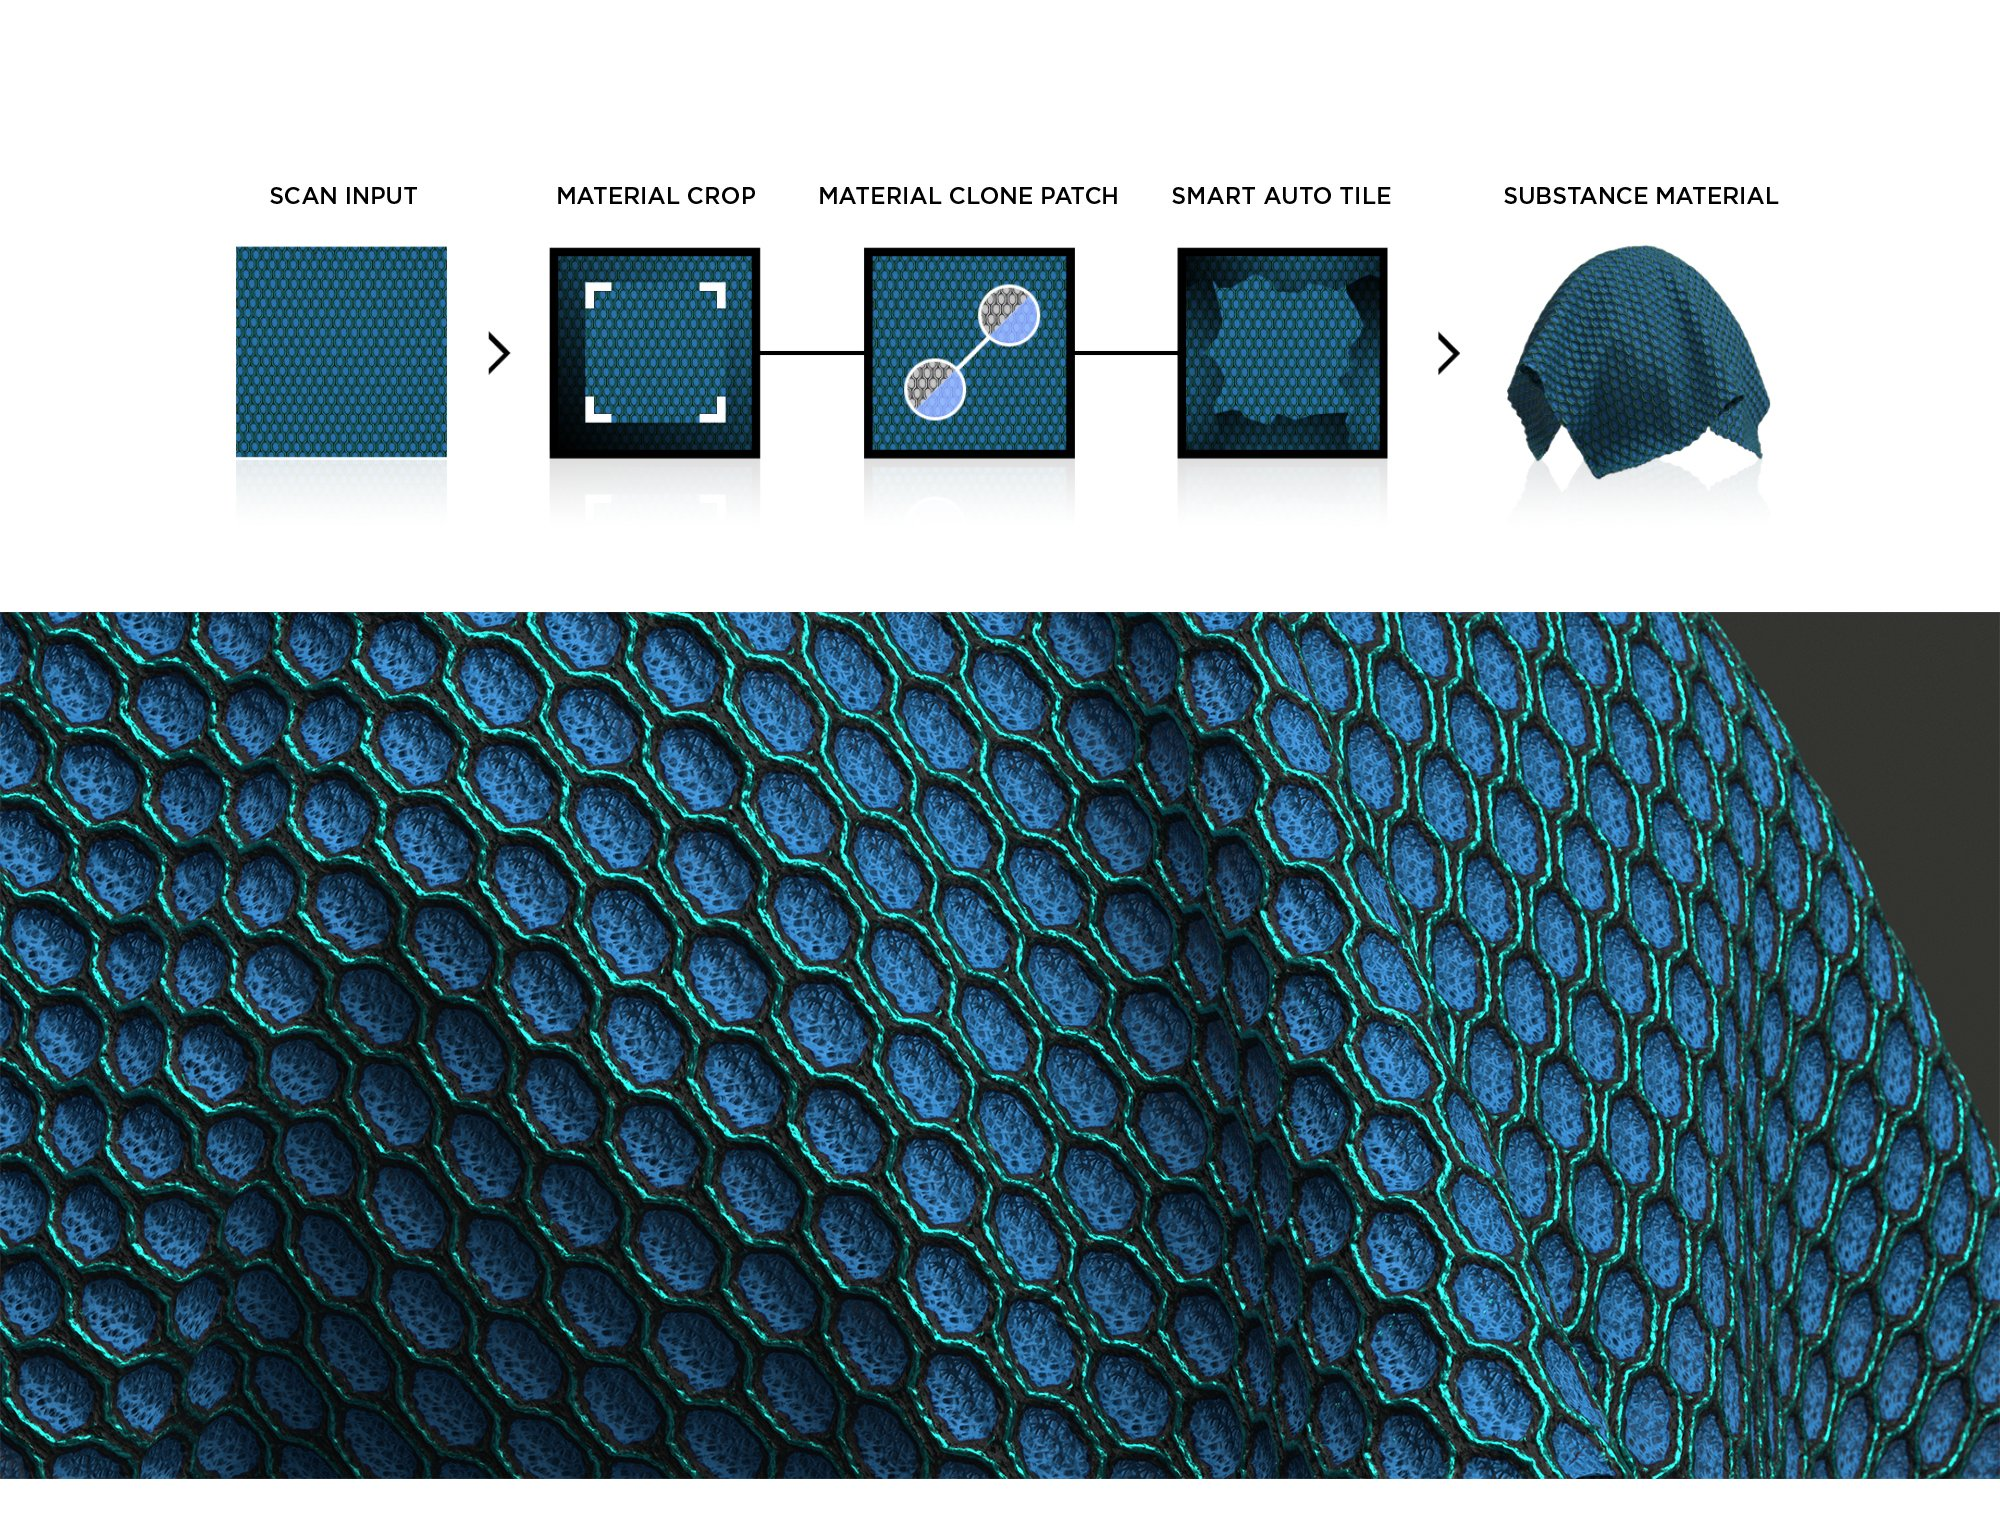 Scan_Based_Material_Workflow_Final_evermotion_660.jpg